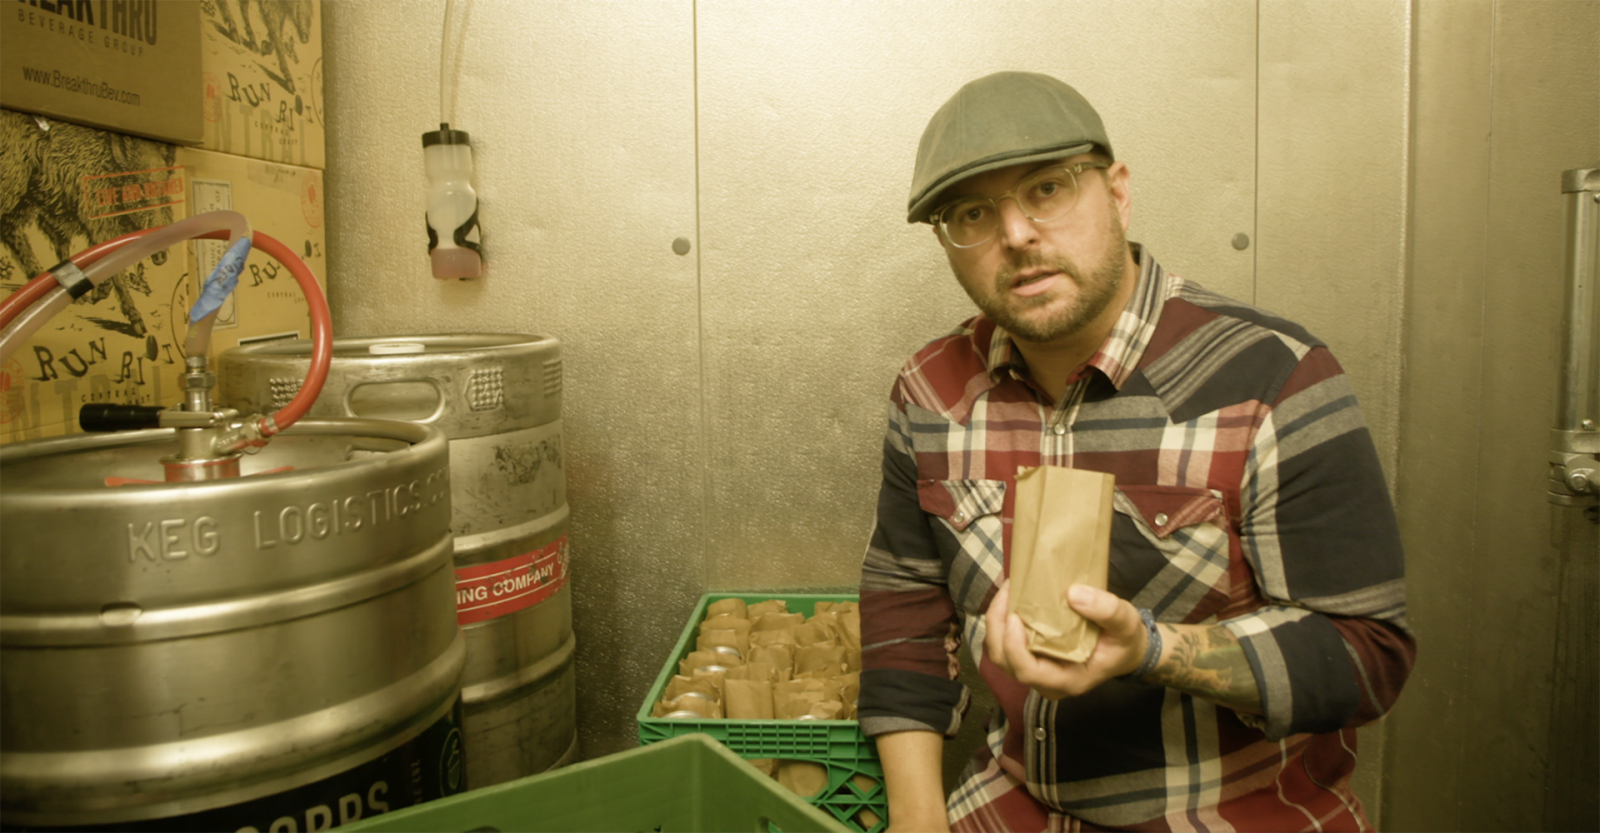 #Snappchat with Mat Snapp, beer made for drinking